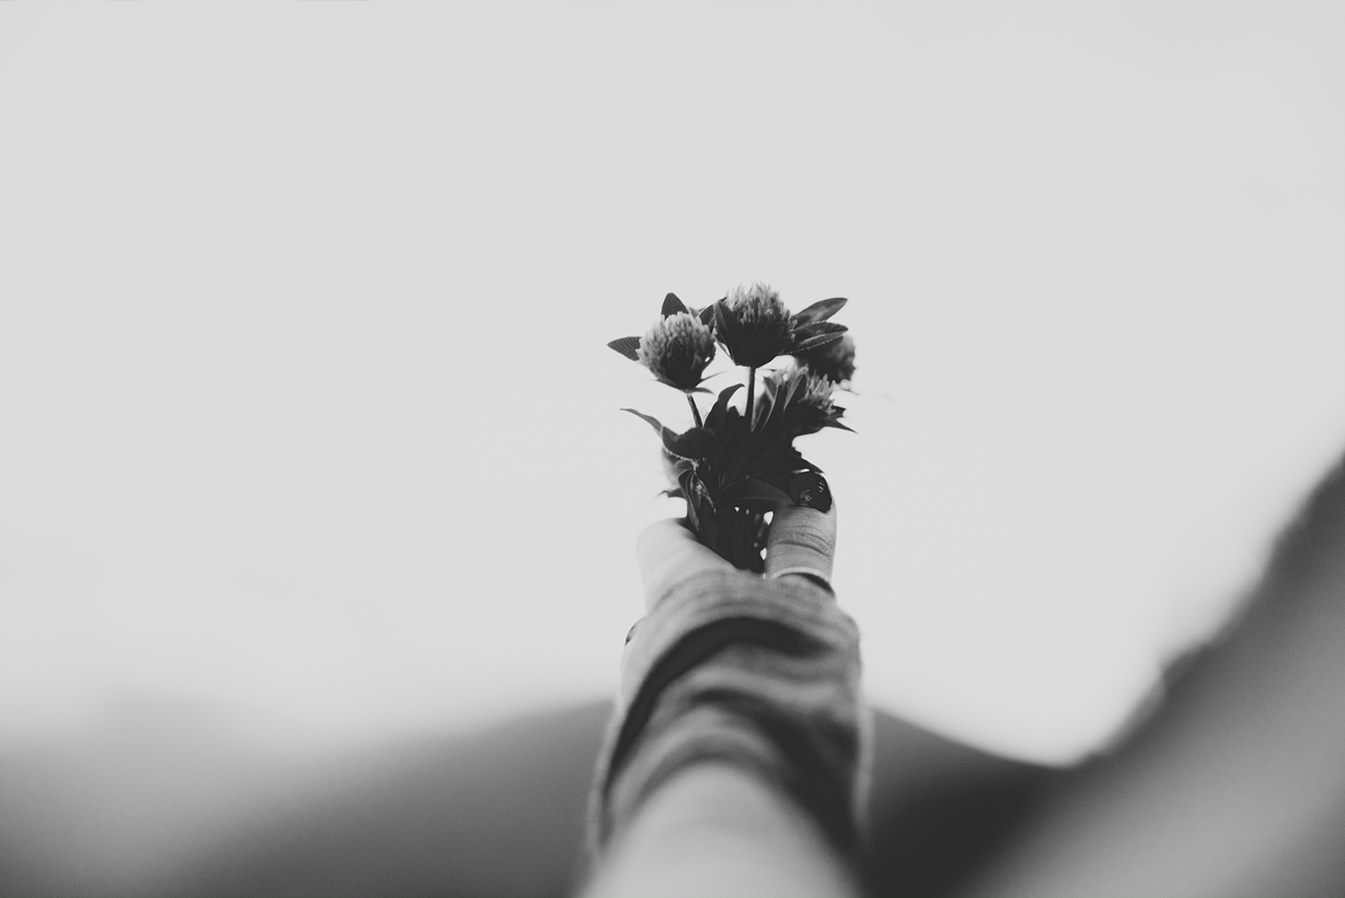 An outstretched hand holding flowers in black and white